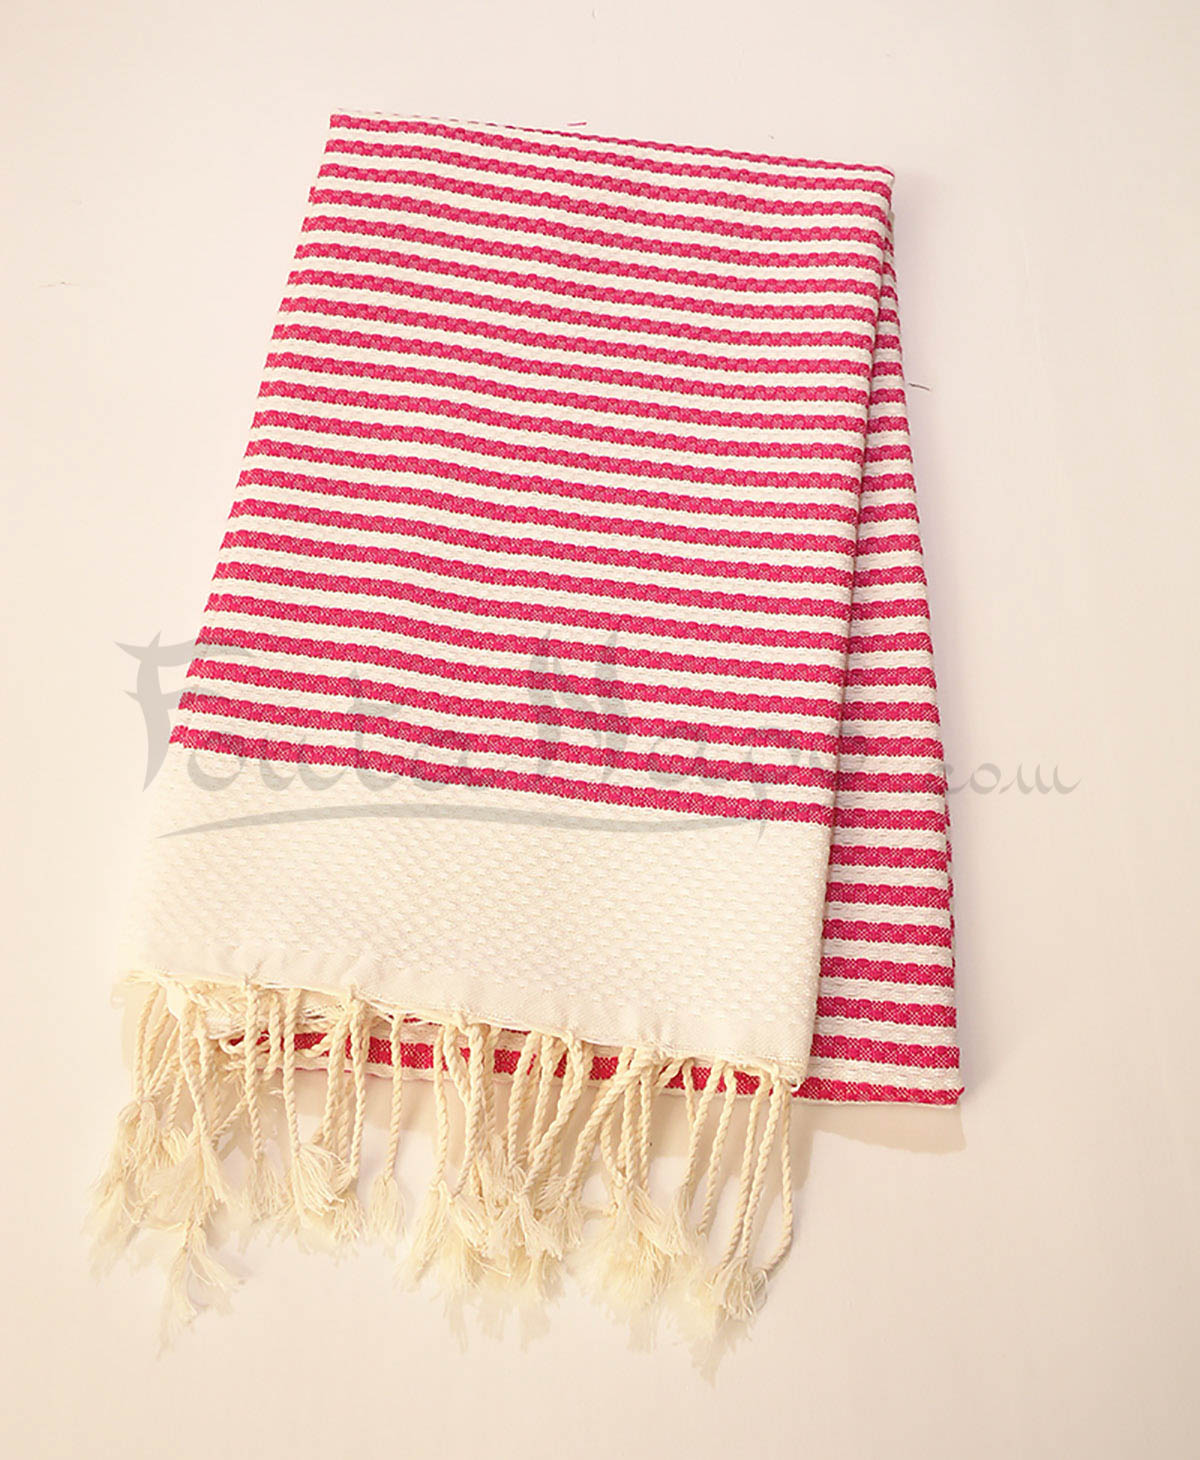 The Fouta Towel Honeycomb Ziwane